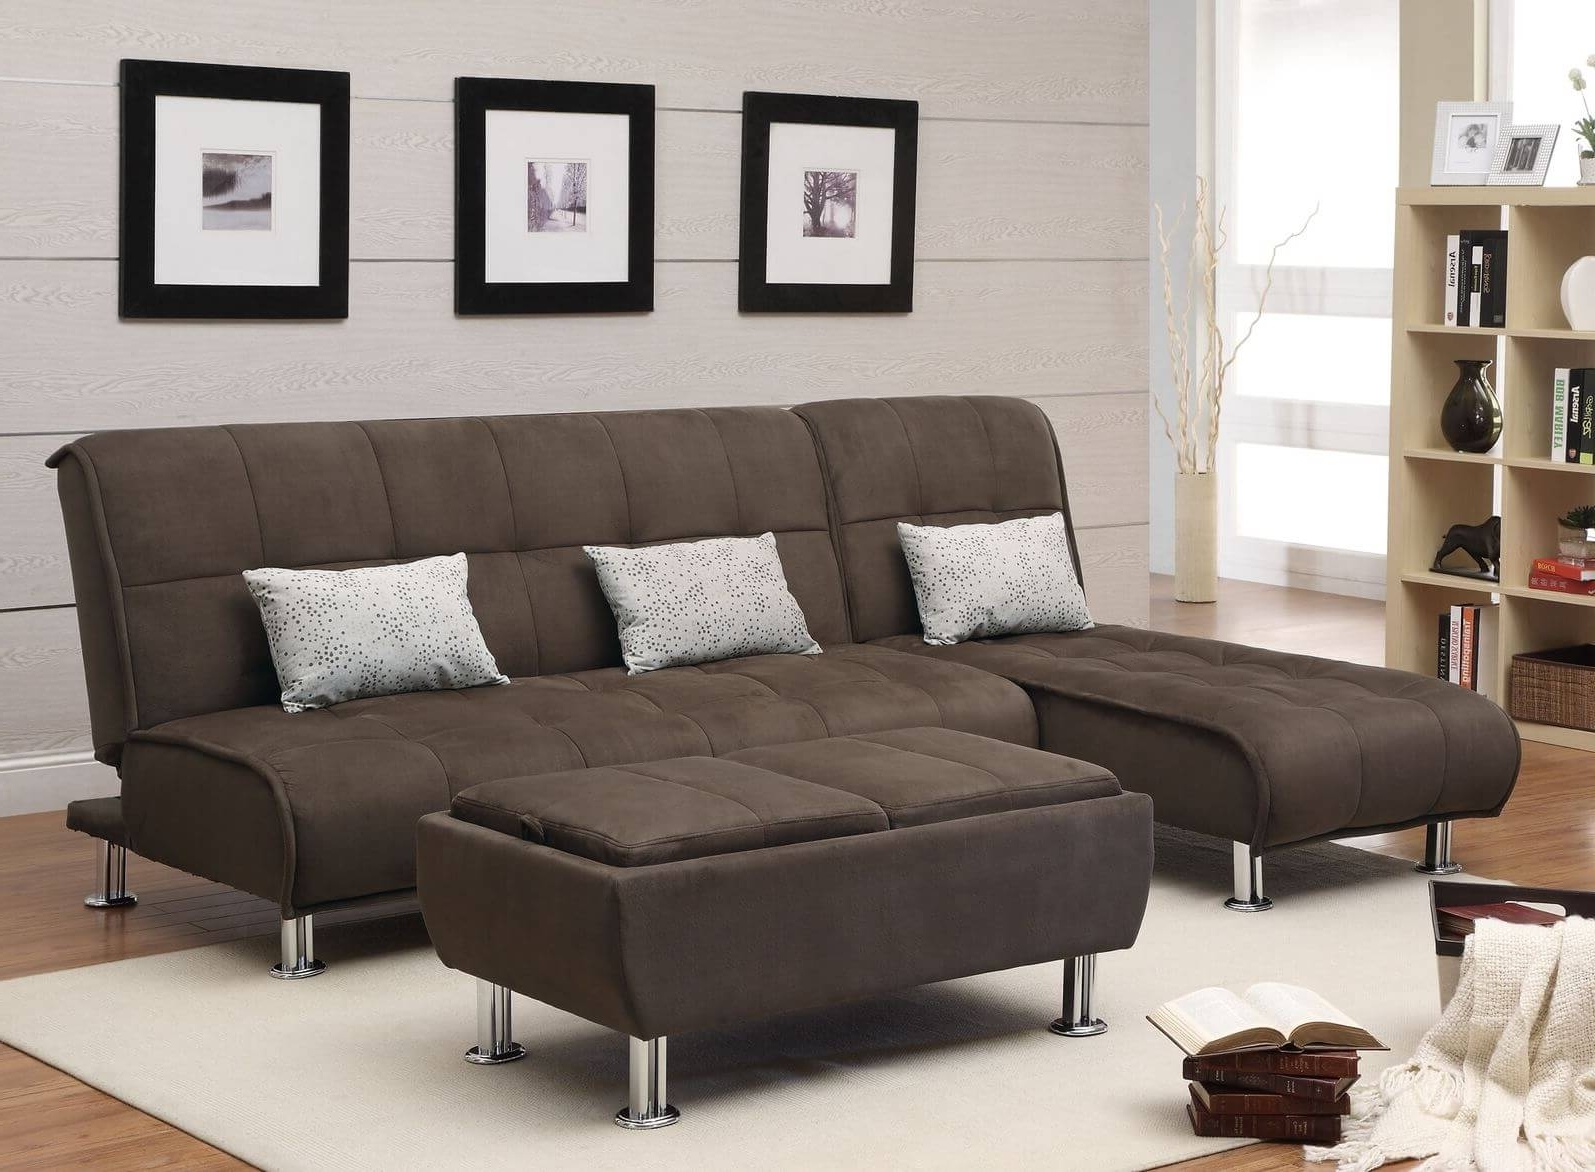 Quad Cities Sectional Sofas Throughout Fashionable Furniture : Ethan Allen Wood Sofa Chaise Lounge Furniture Indoor (View 3 of 15)